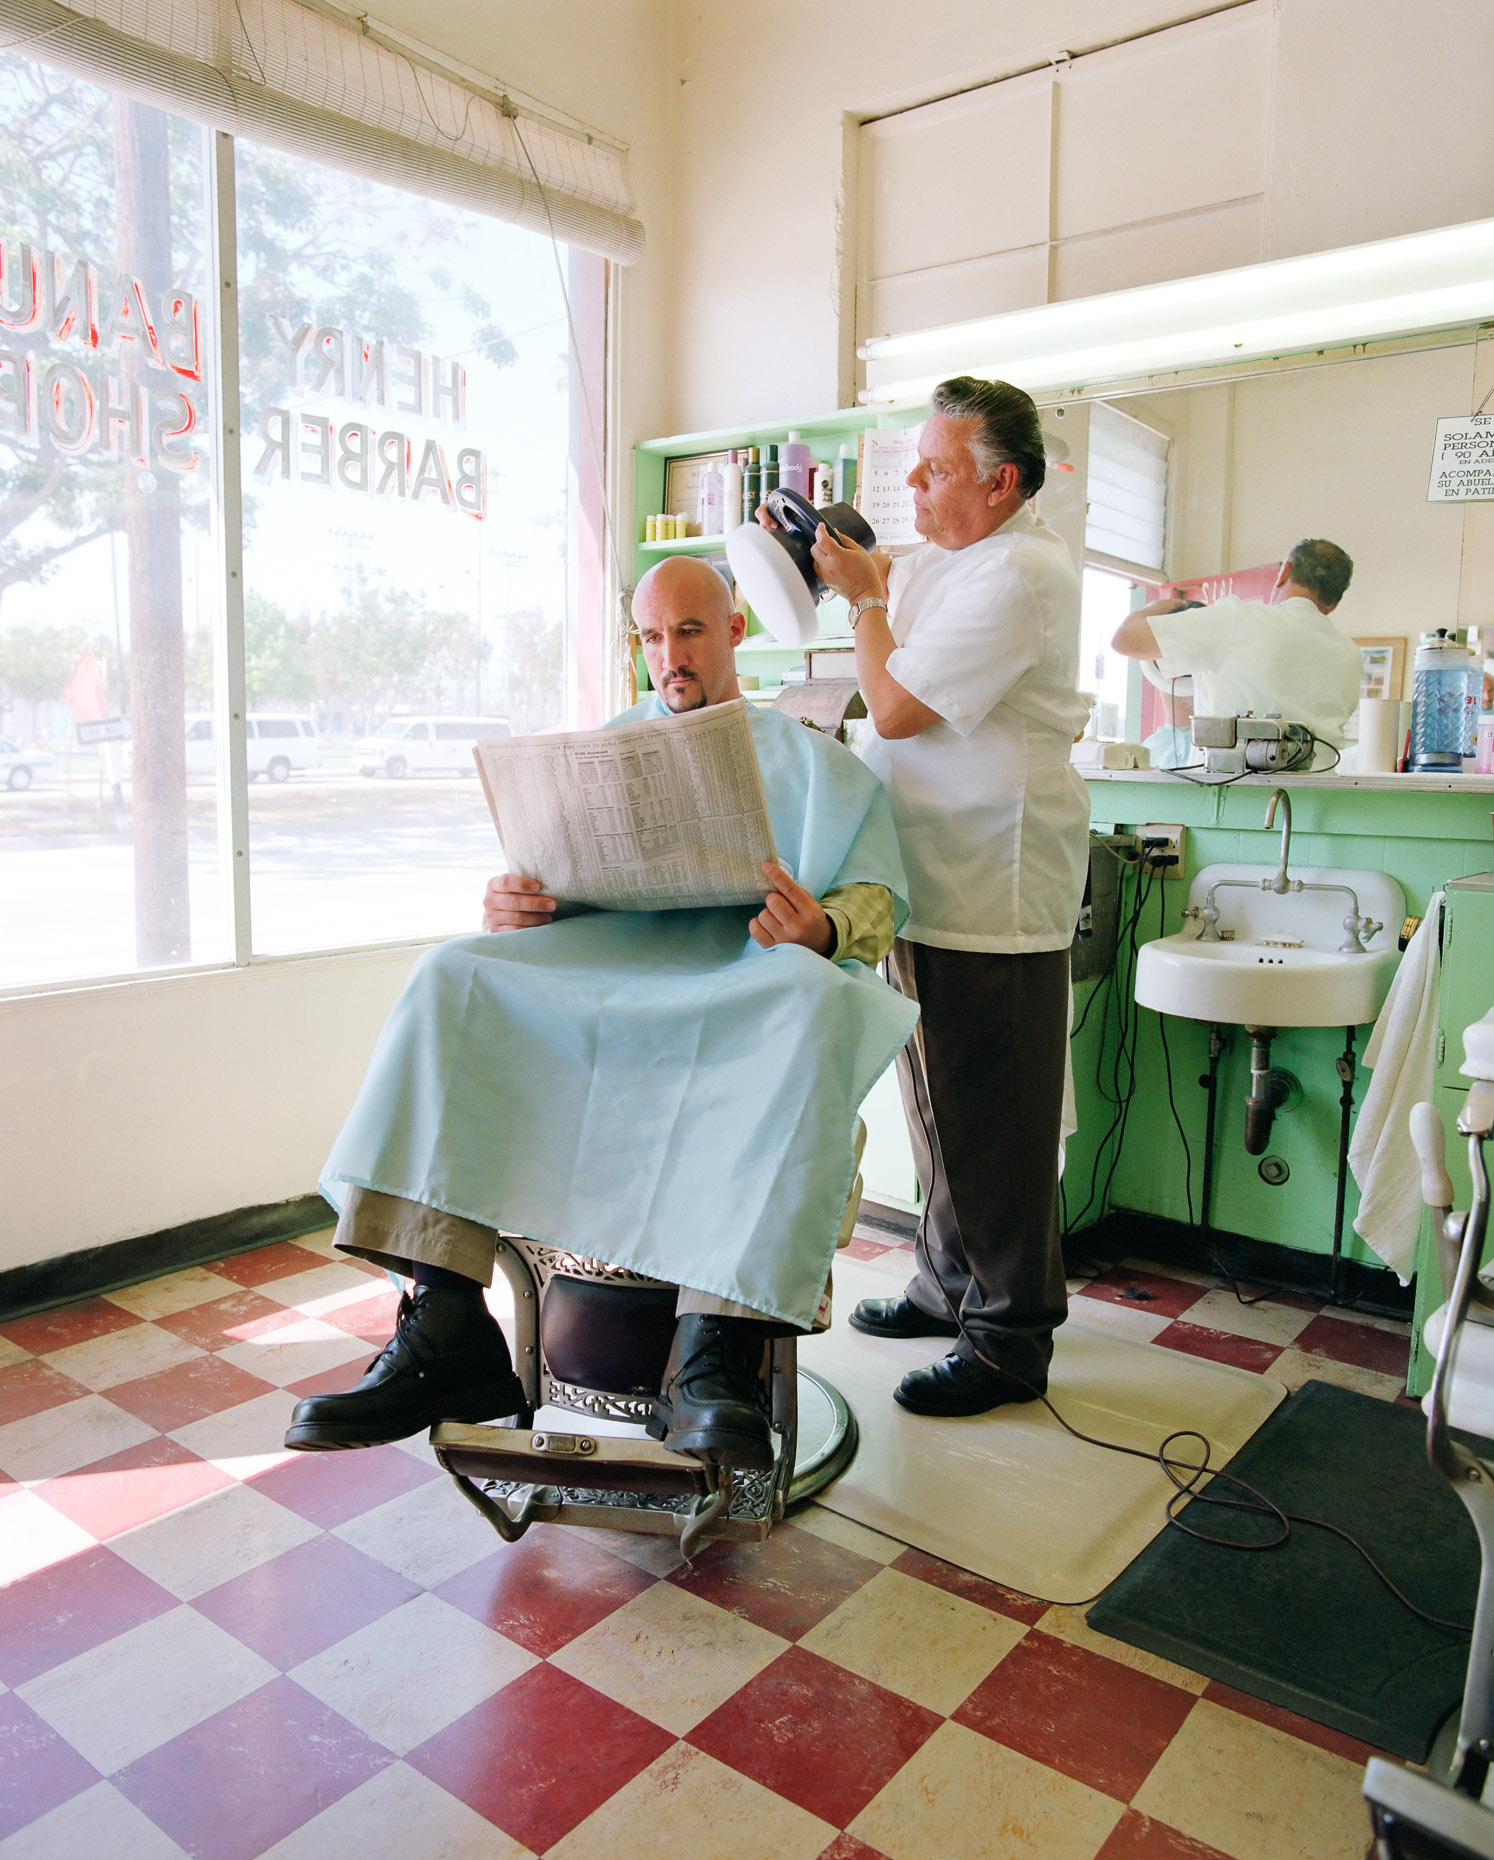 Bald man in barbershop gets his head buffed by barber. David Zaitz.